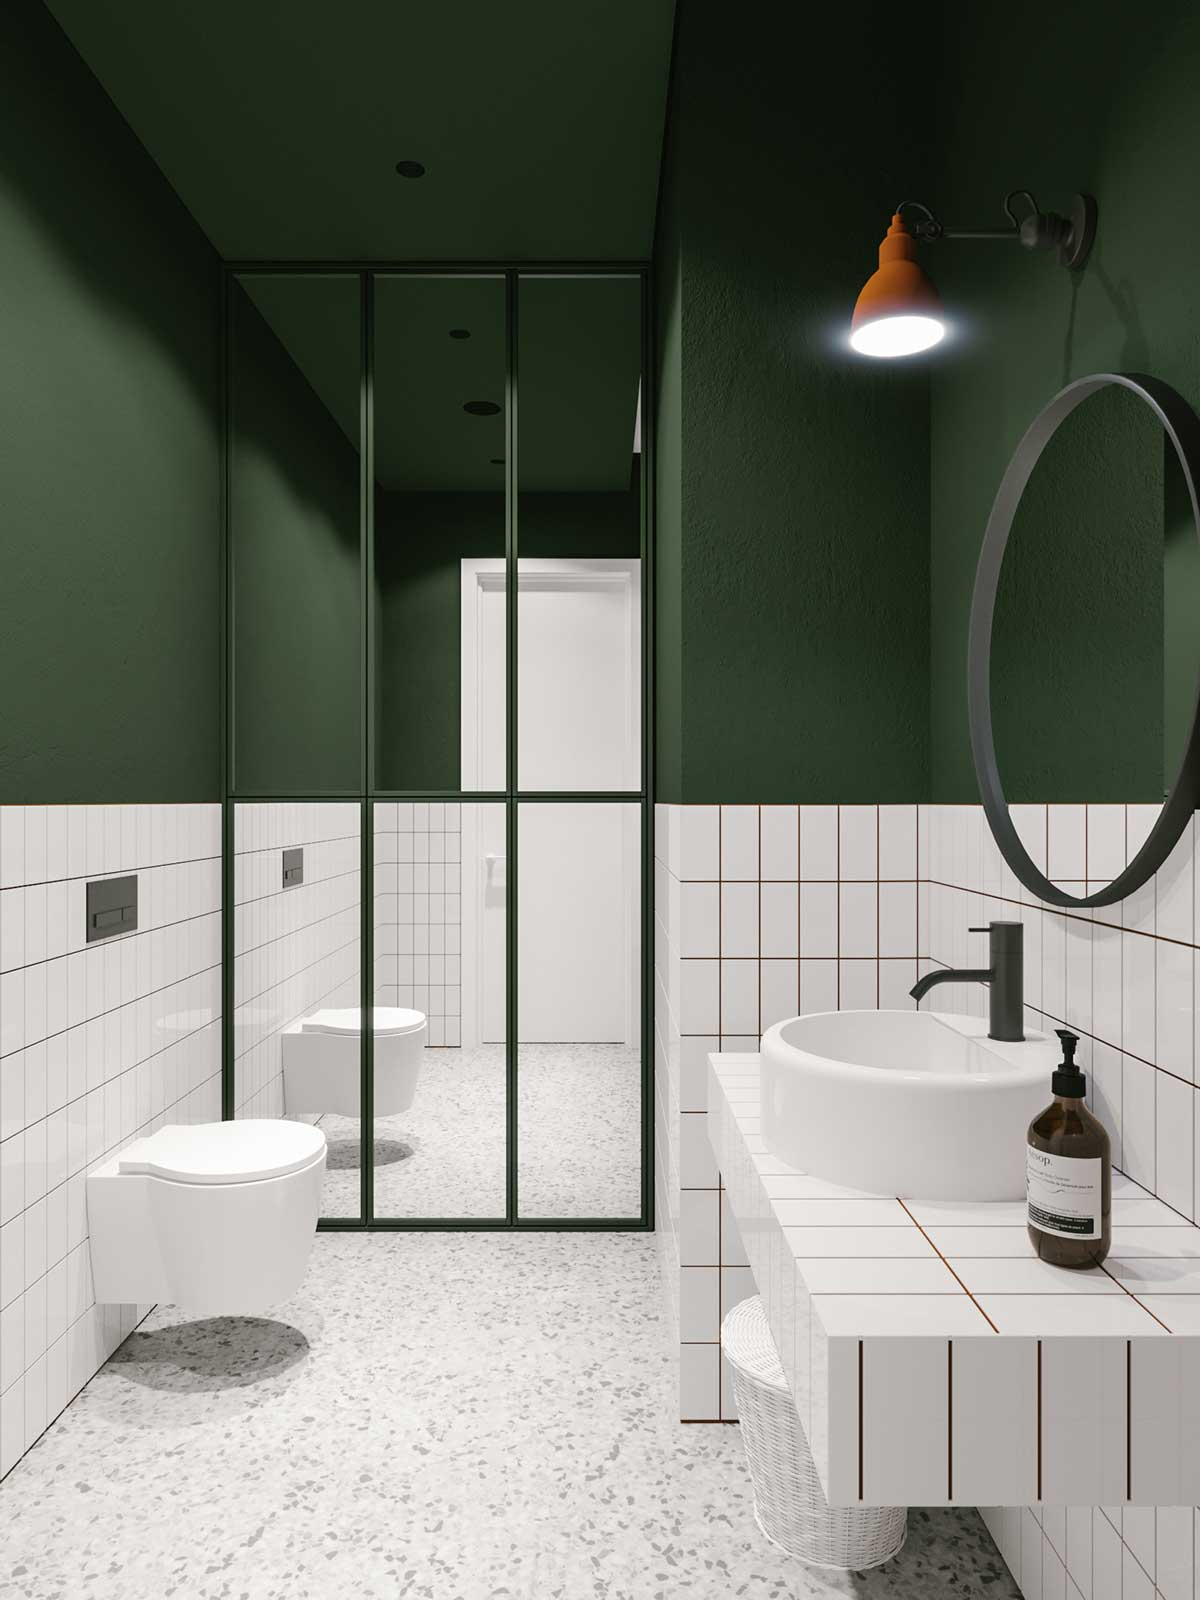 Gorgeous green bathrooms, Odessalon by Architects Evgeniy Bulatnikov and Emil Dervish